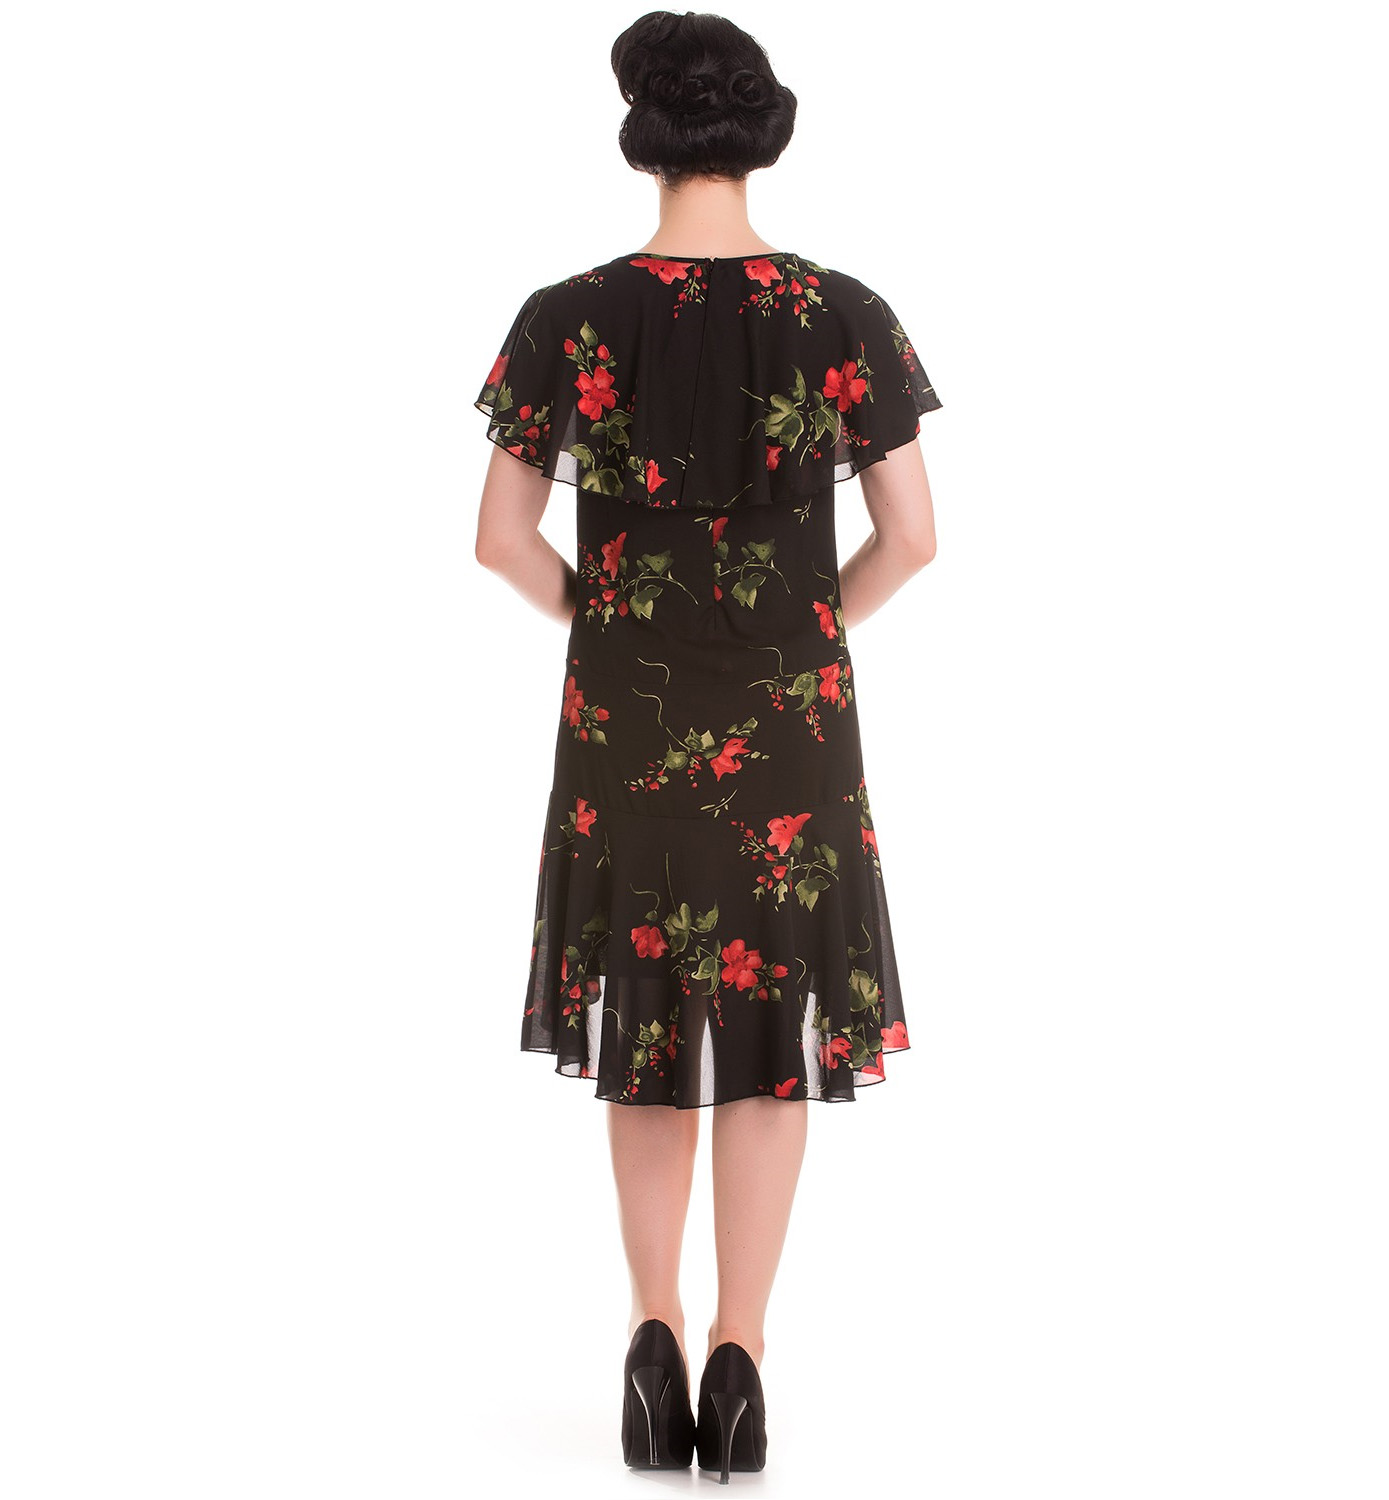 Hell-Bunny-20s-40s-Black-Flapper-Cocktail-Party-Dress-LILY-Floral-Black-All-Size thumbnail 9